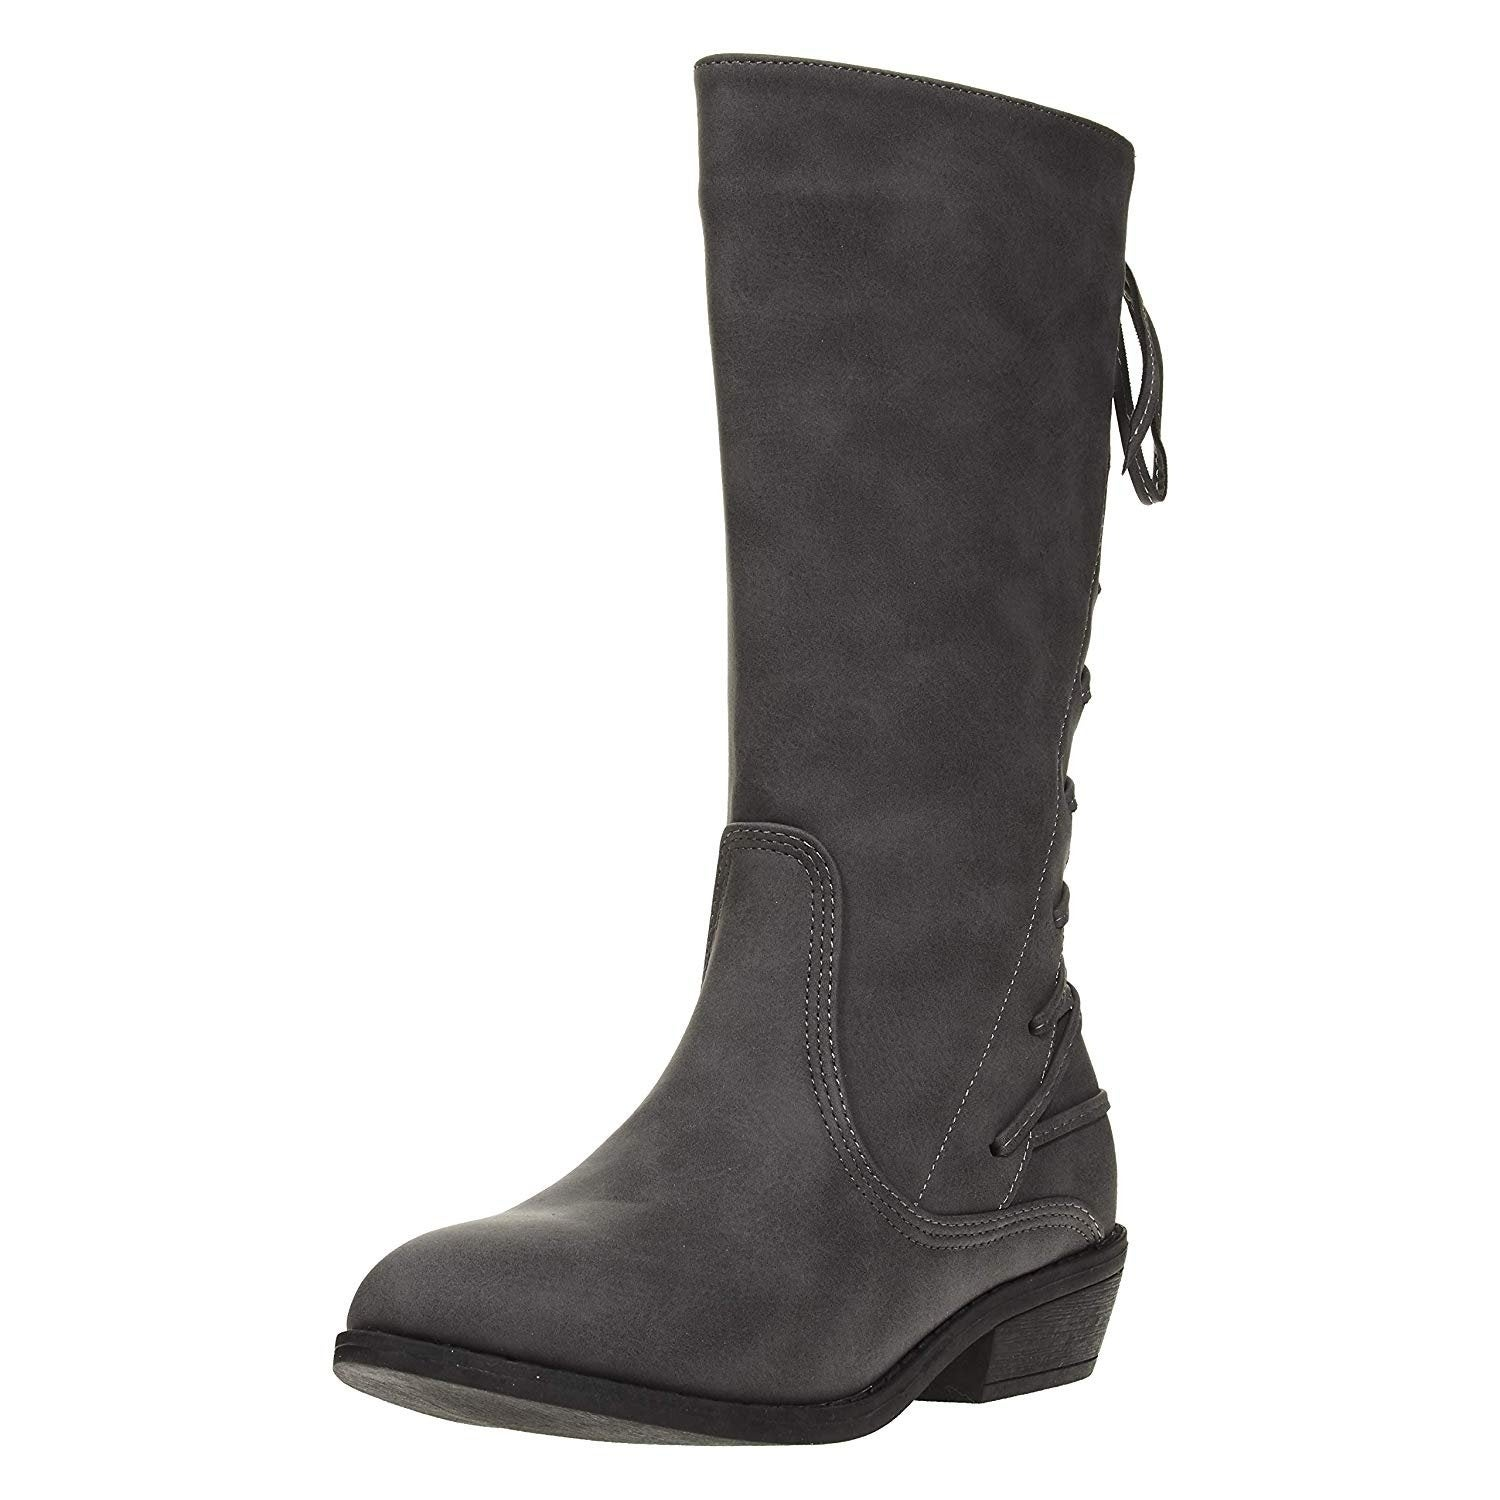 dress boots for girls